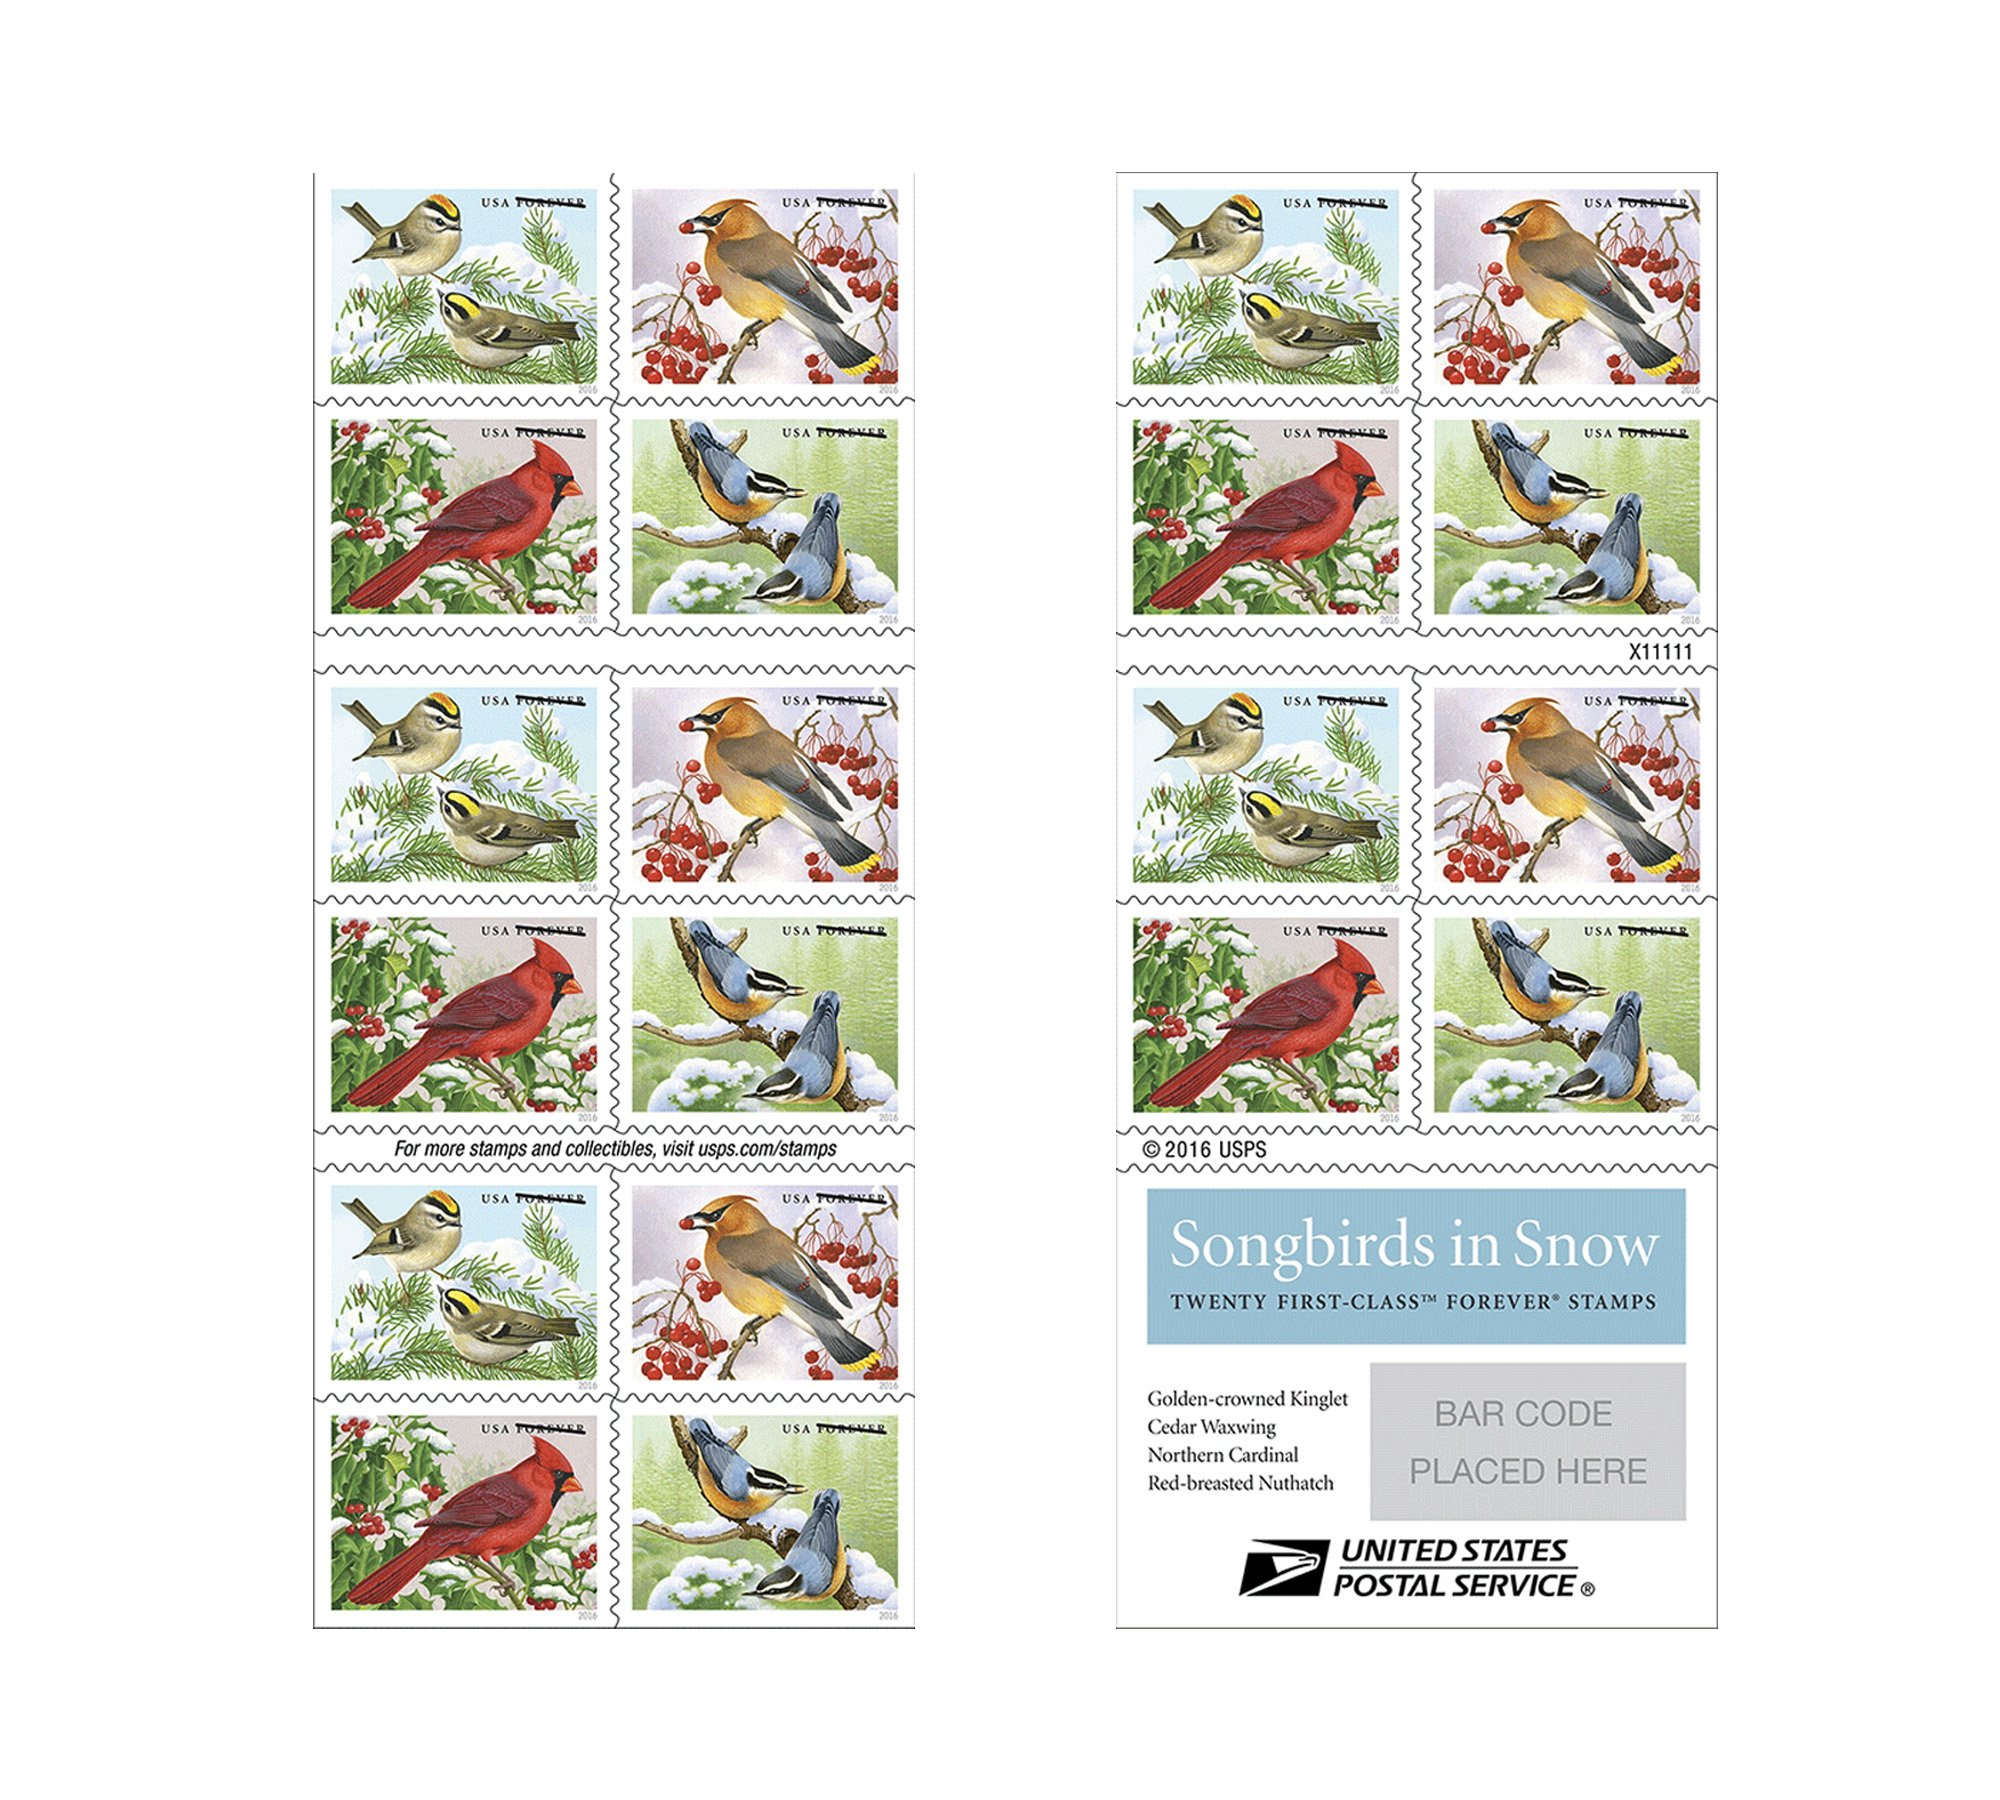 Songbirds in Snow Forever First Class USPS Postage Stamps brighten cold winter days (1 sheet of 20 Stamps)